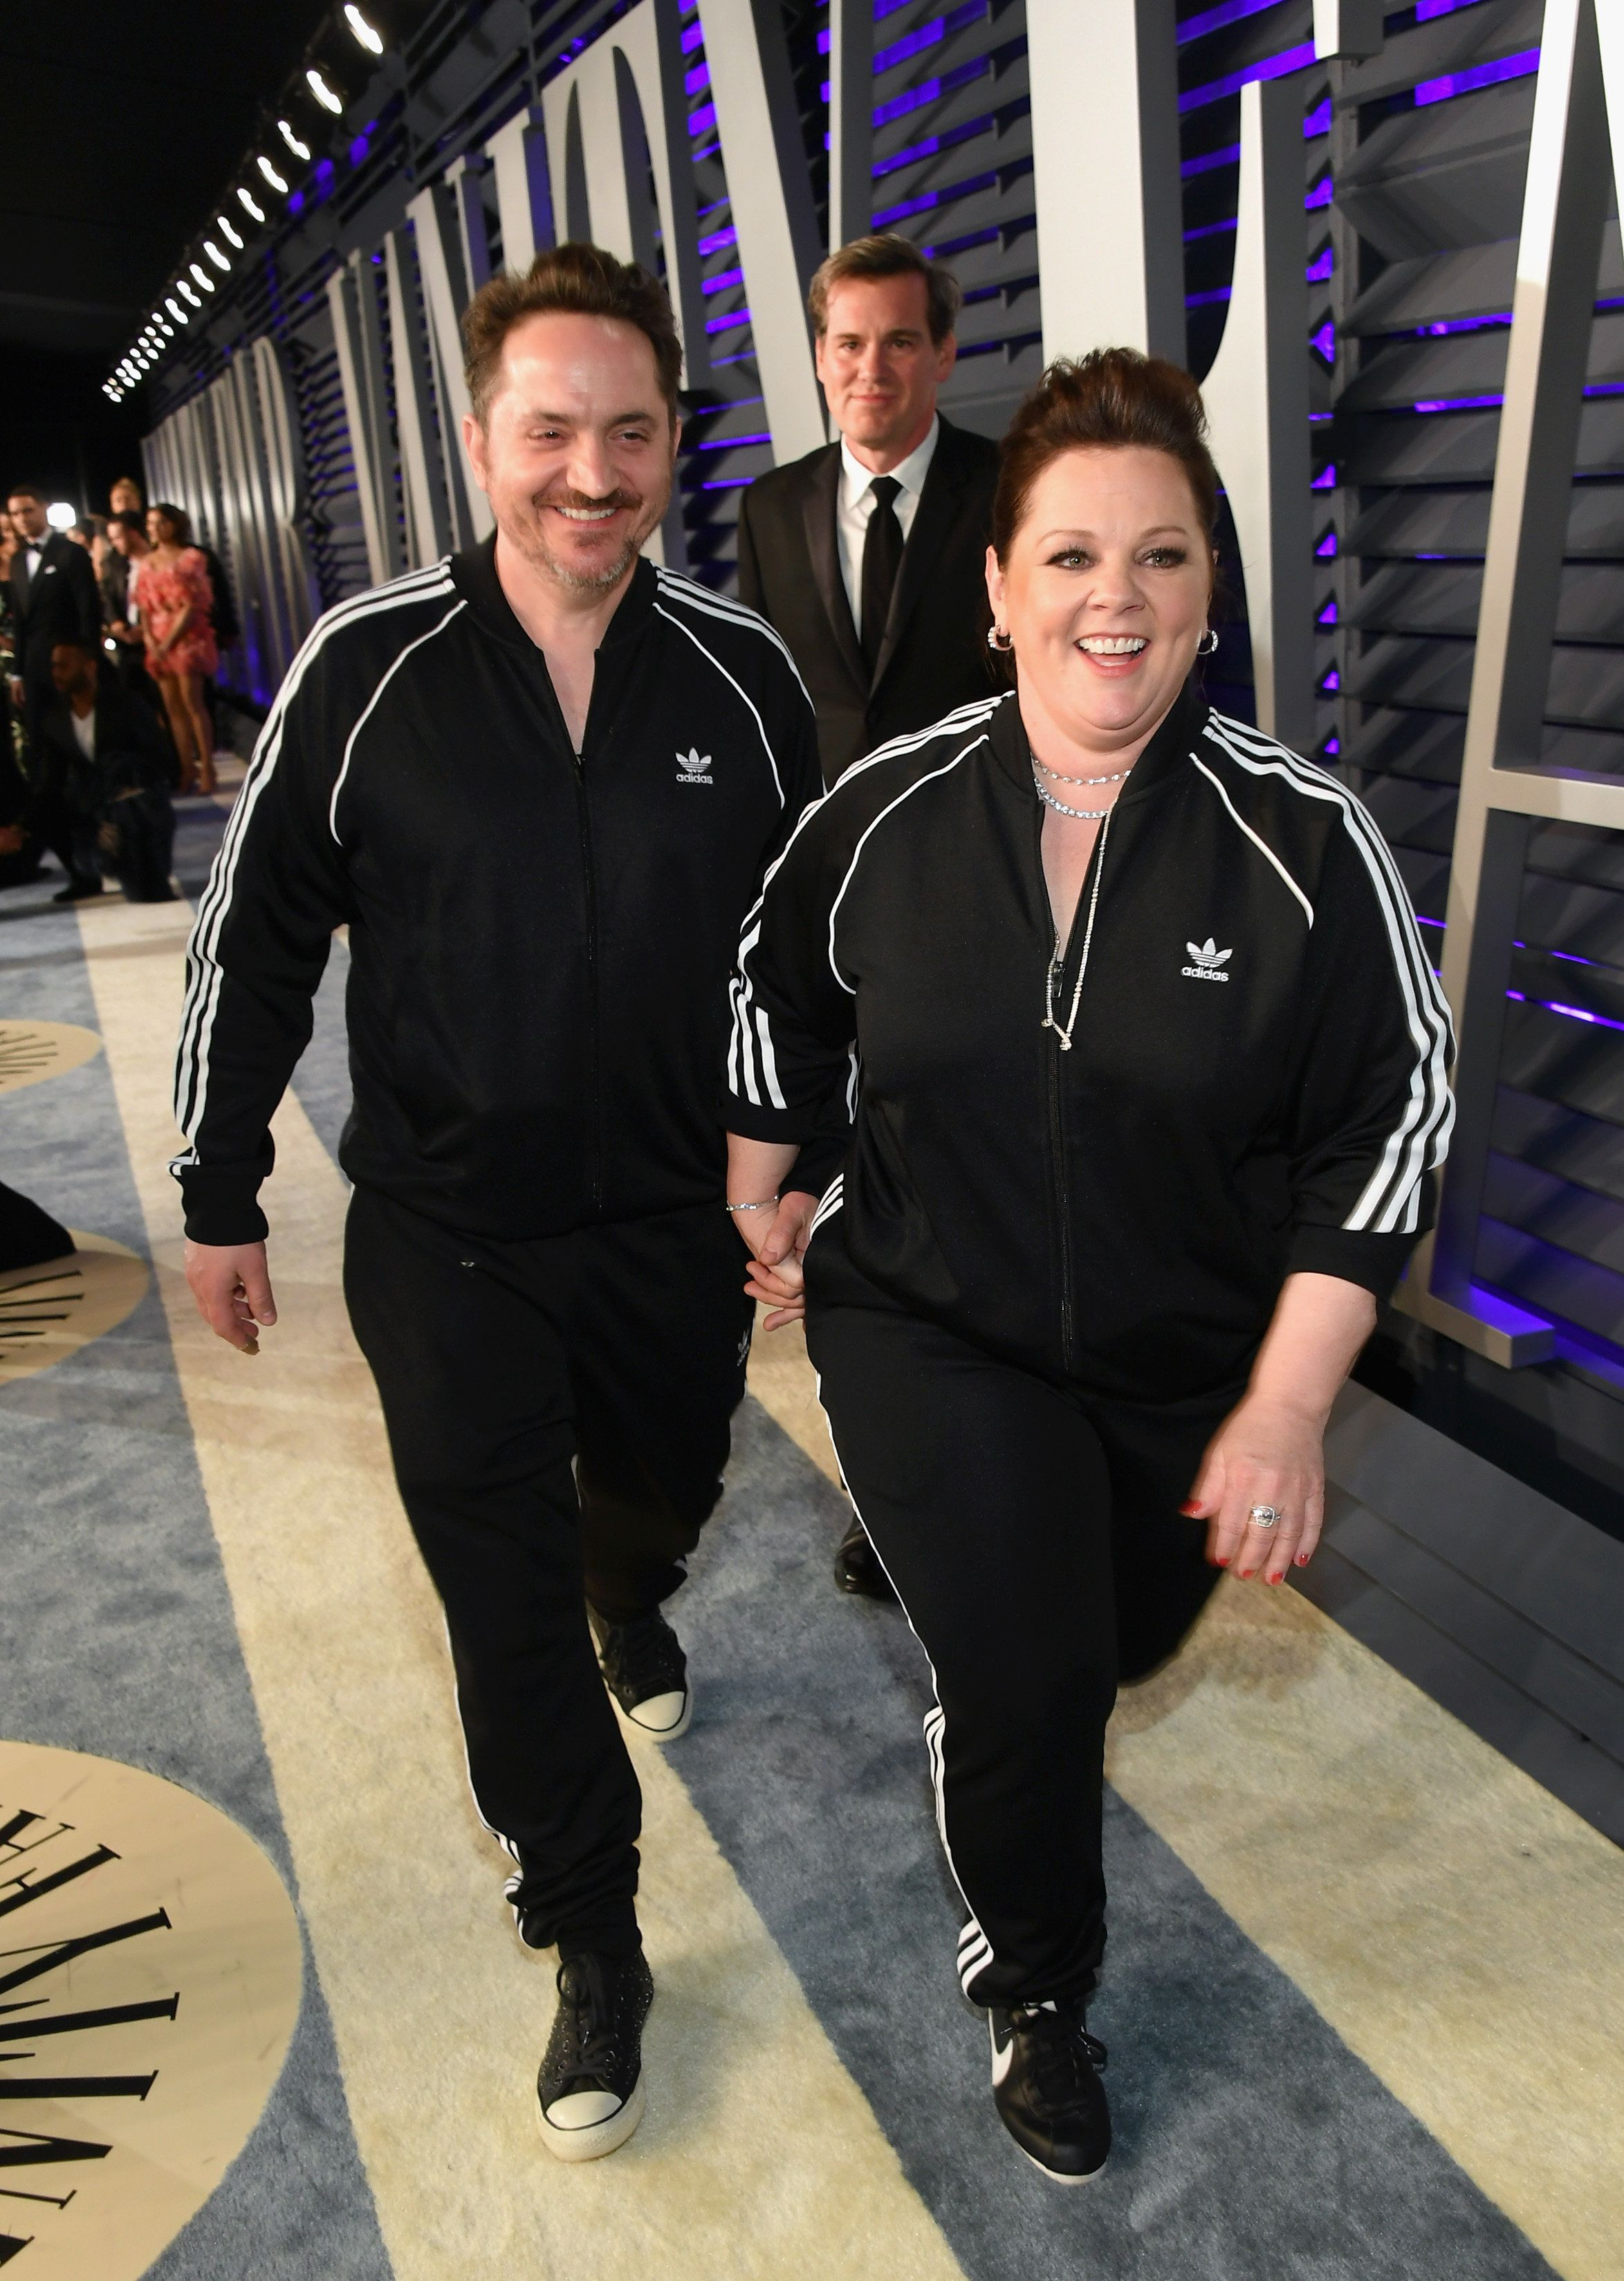 BEVERLY HILLS, CA - FEBRUARY 24:  Ben Falcone (L) and Melissa McCarthy attend the 2019 Vanity Fair Oscar Party hosted by Radhika Jones at Wallis Annenberg Center for the Performing Arts on February 24, 2019 in Beverly Hills, California.  (Photo by Mike Coppola/VF19/Getty Images for VF)